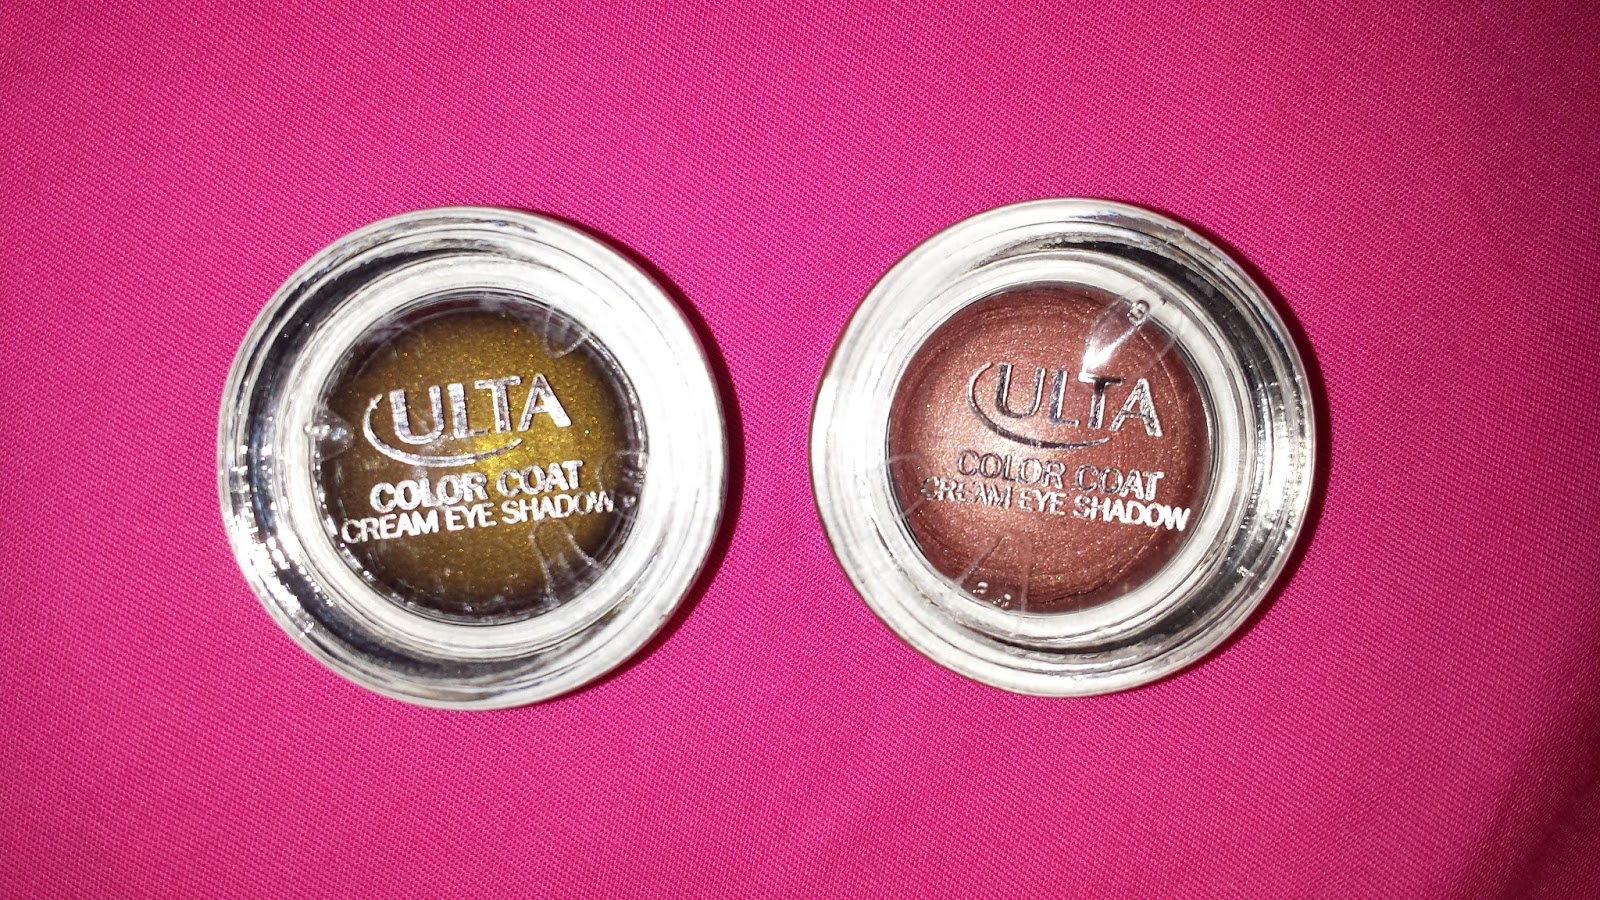 Ulta's 2-in-1 Matte Cream Eye Shadows combine the benefits of an eye primer with a beautiful range of matte eye shadow shades. These waterproof eye shadows won't crease or 5/5(5).